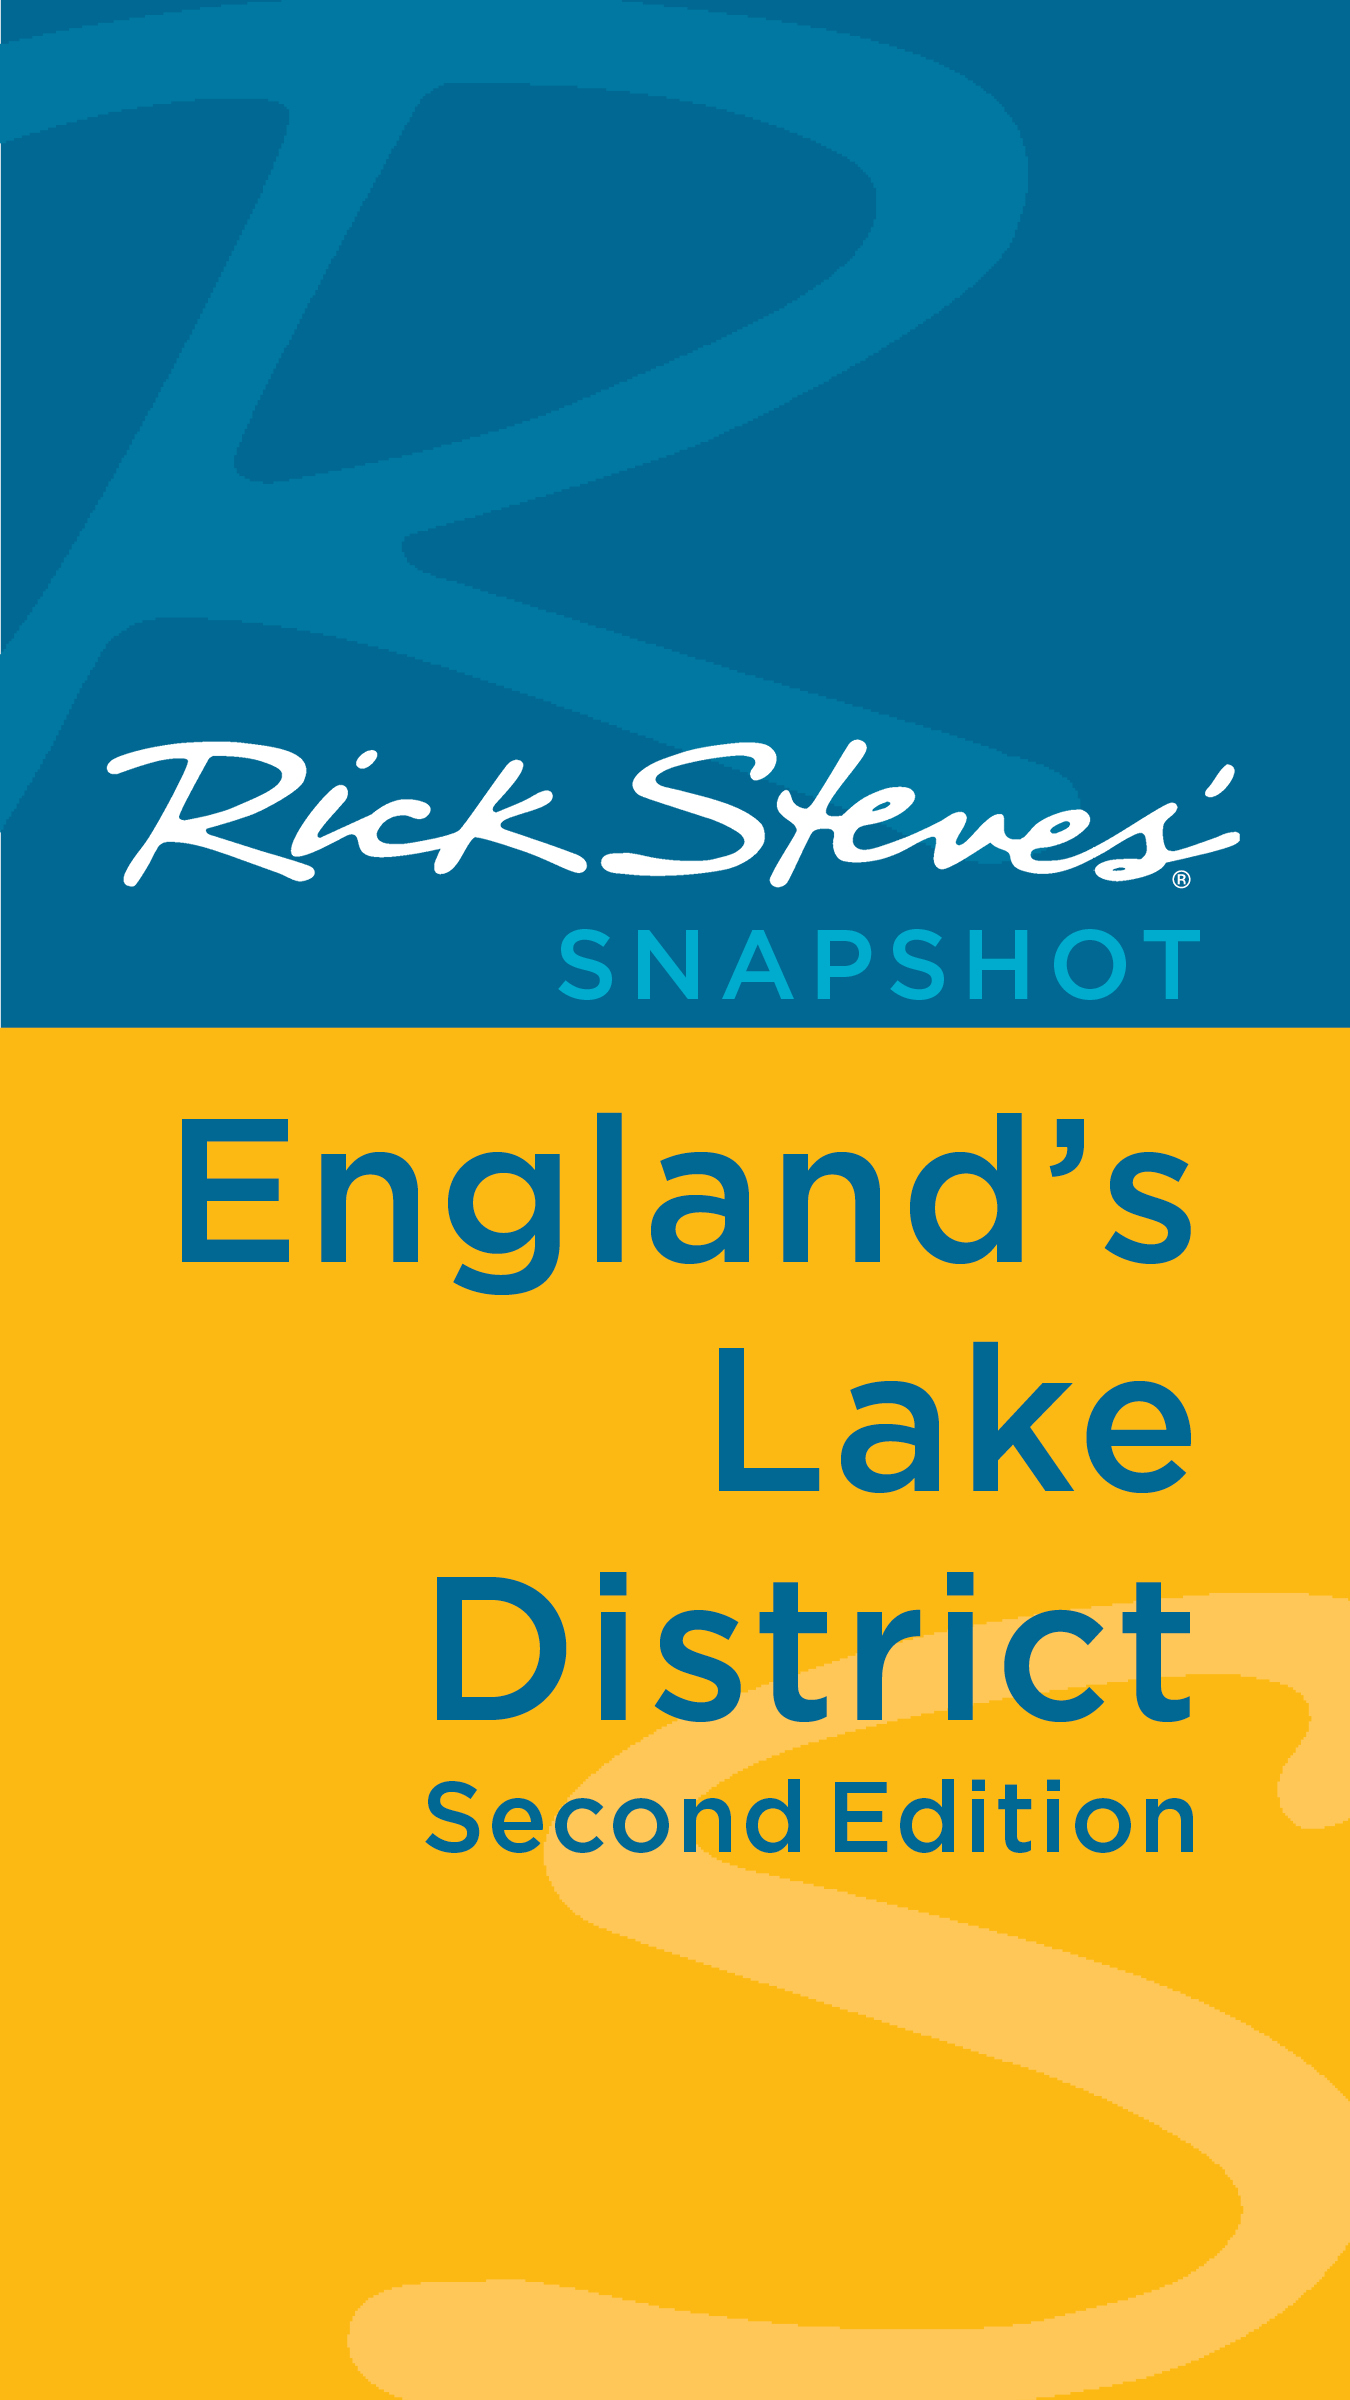 Rick Steves' Snapshot England's Lake District By: Rick Steves